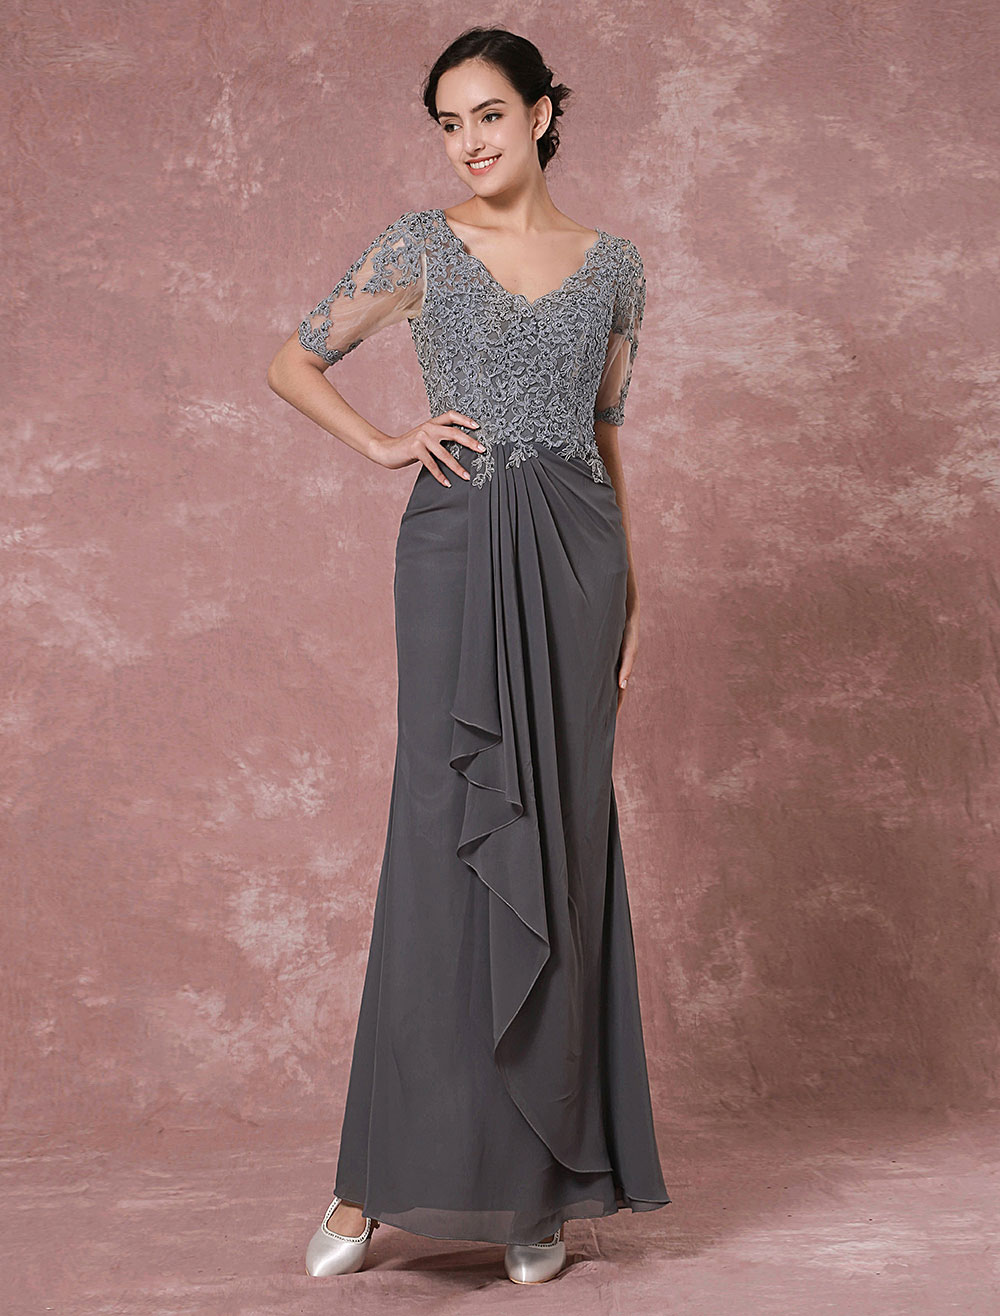 Maxi Lace Mother Dress Grey Chiffon Evening Dress Sheath V-back Beading Wedding Party Dress Wedding Guest Dress